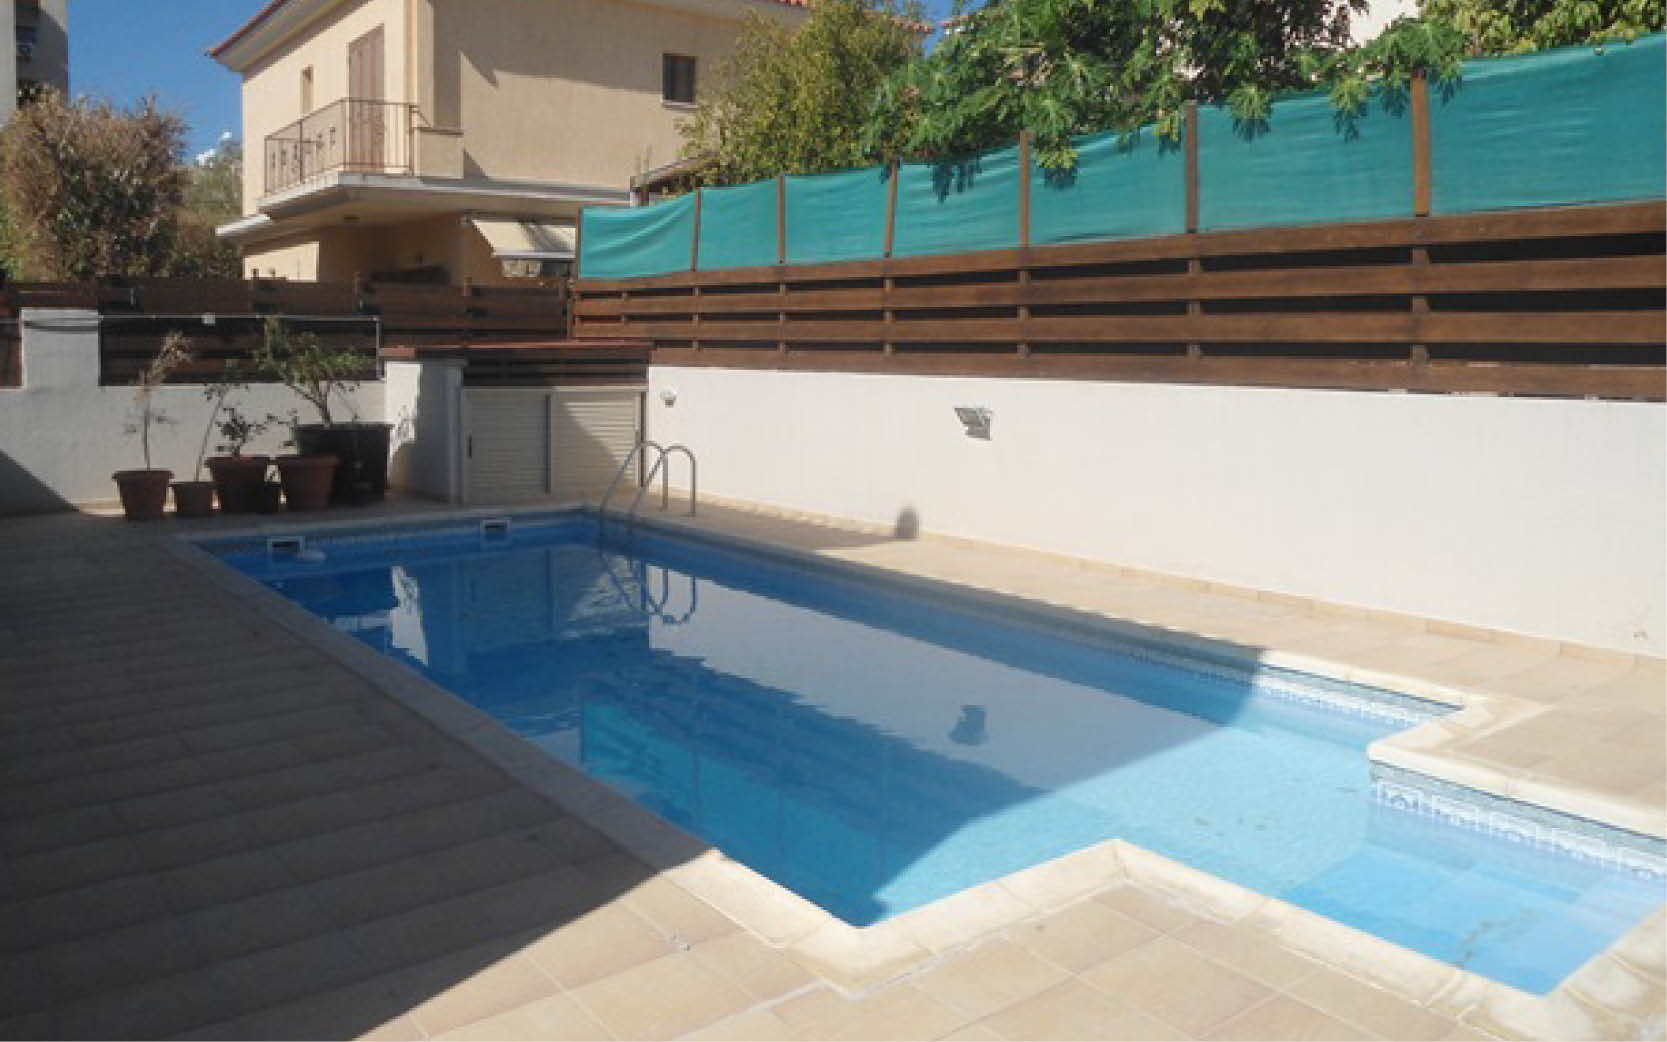 3 Bedroom House With Swimming Pool For Rent In Limassol